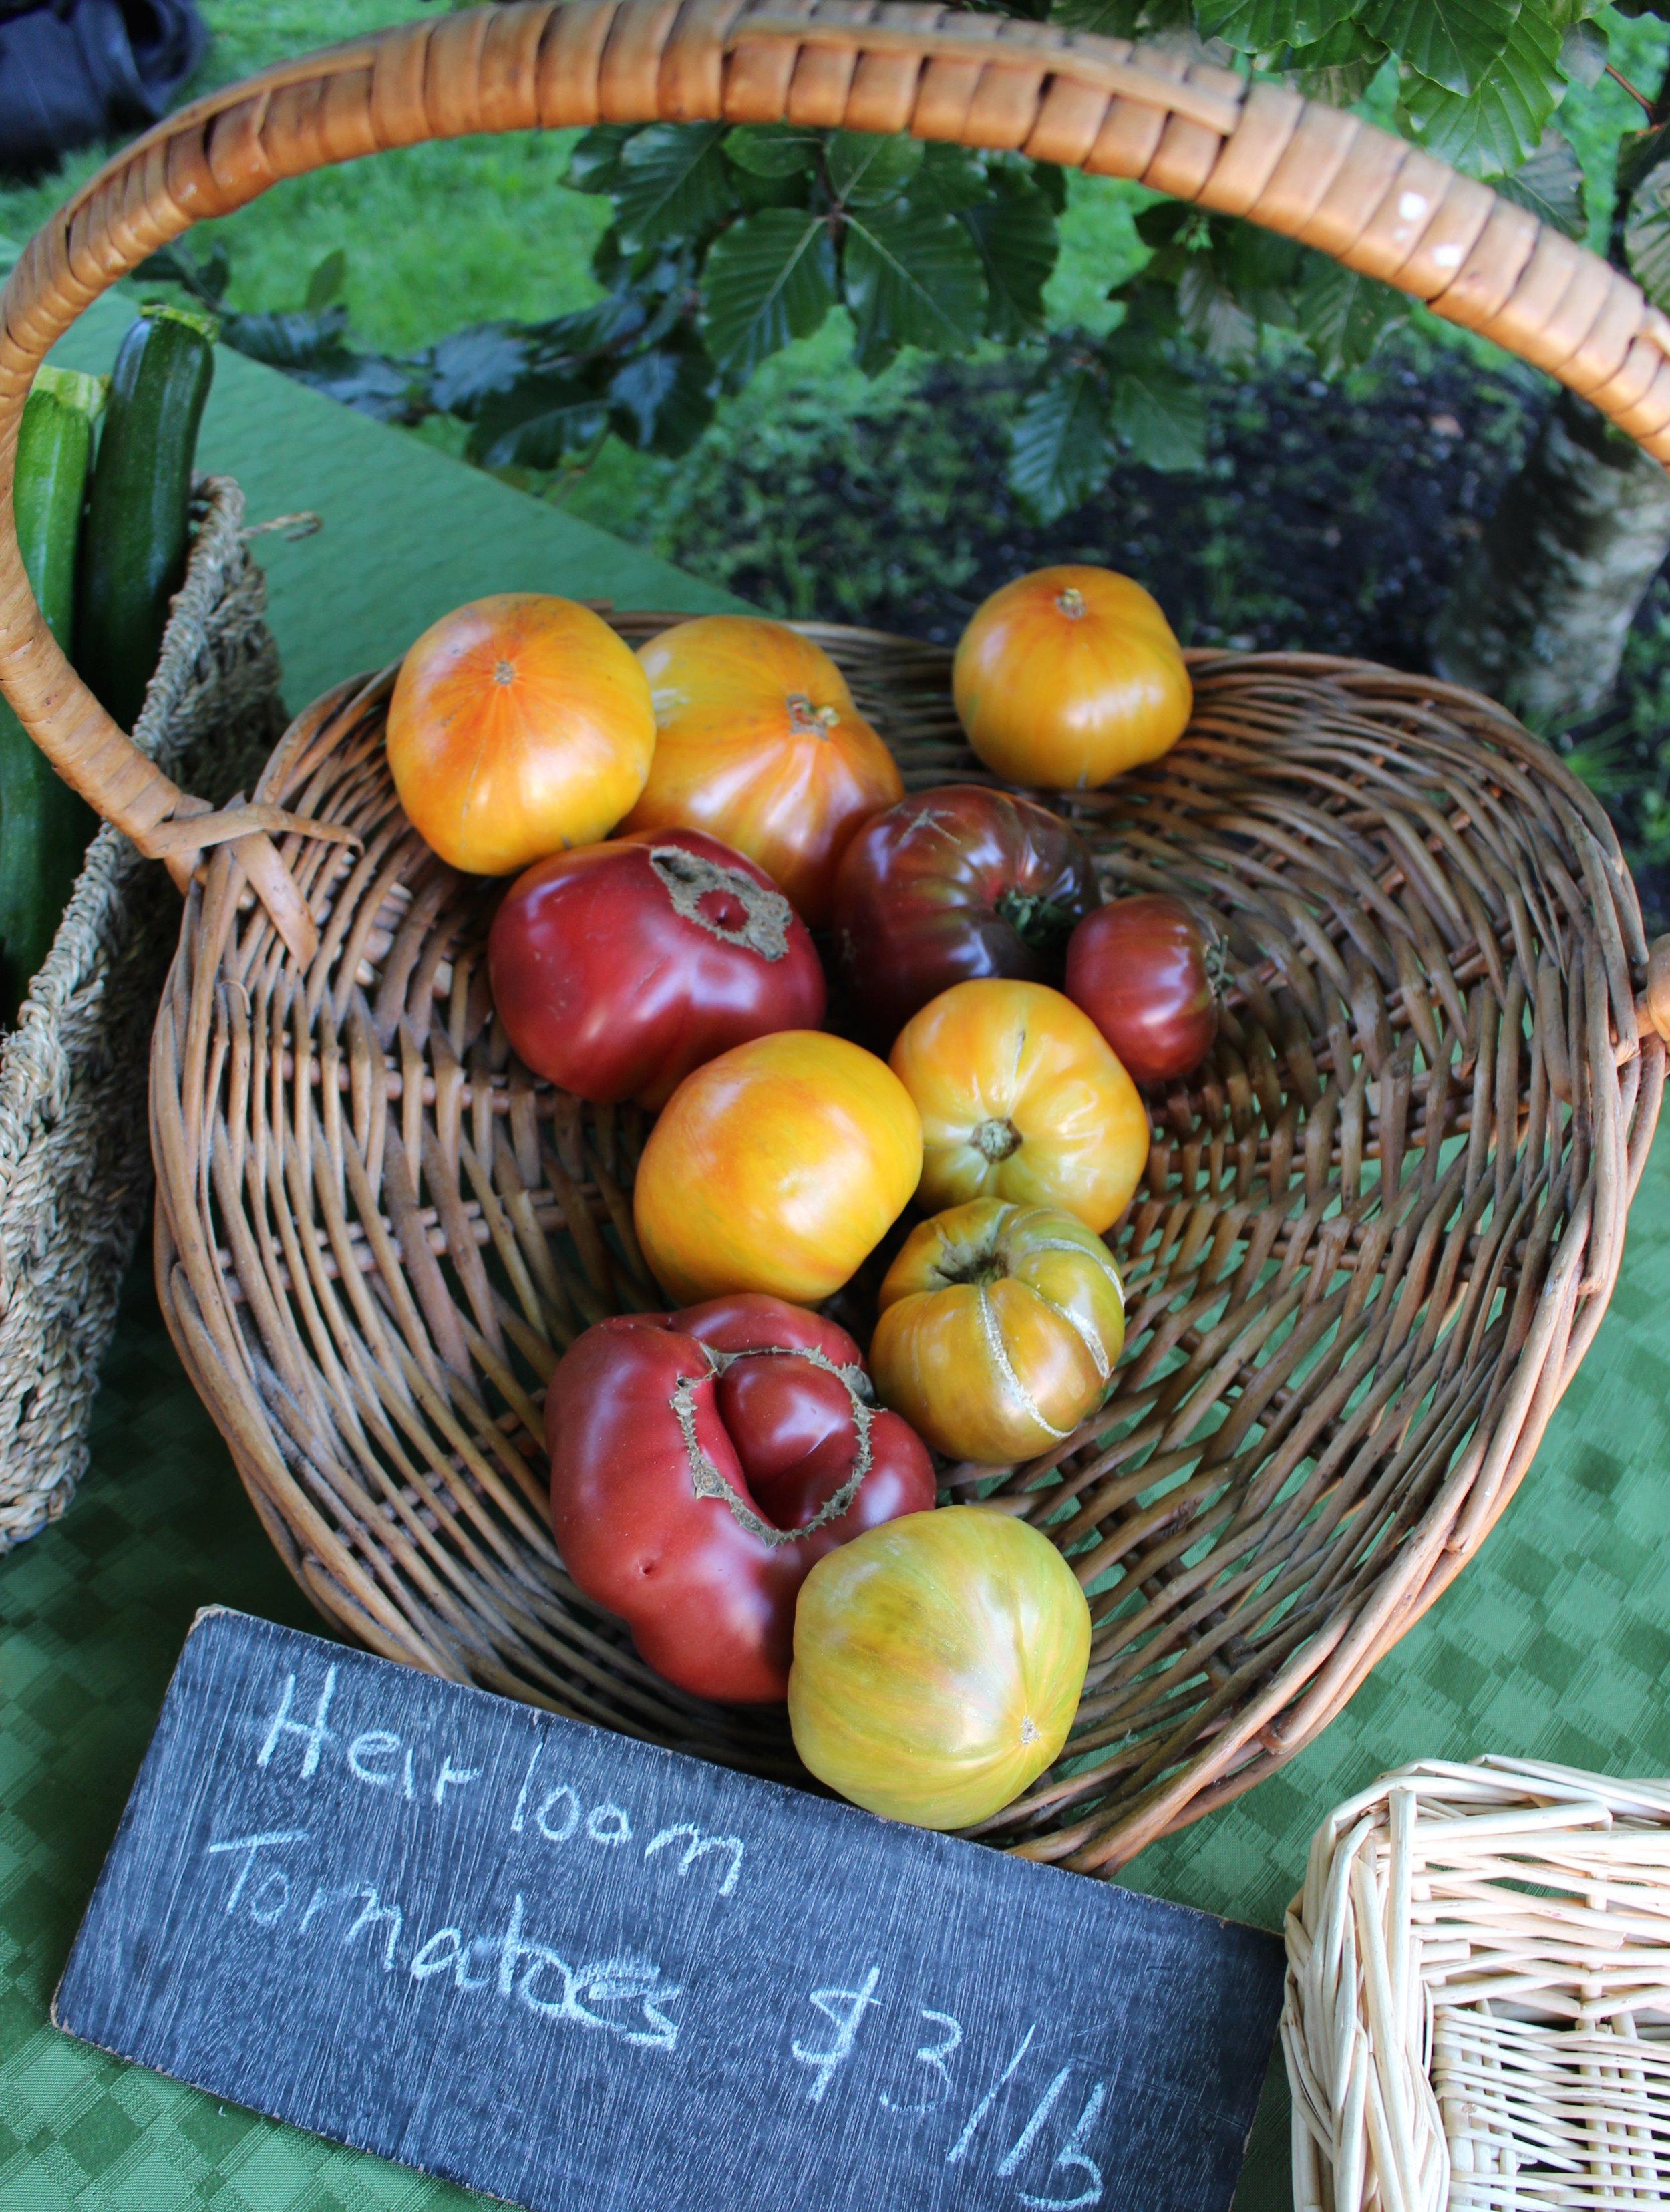 Beautiful heirloom tomatoes, can't wait to get some from my dad in Victoria next weekend